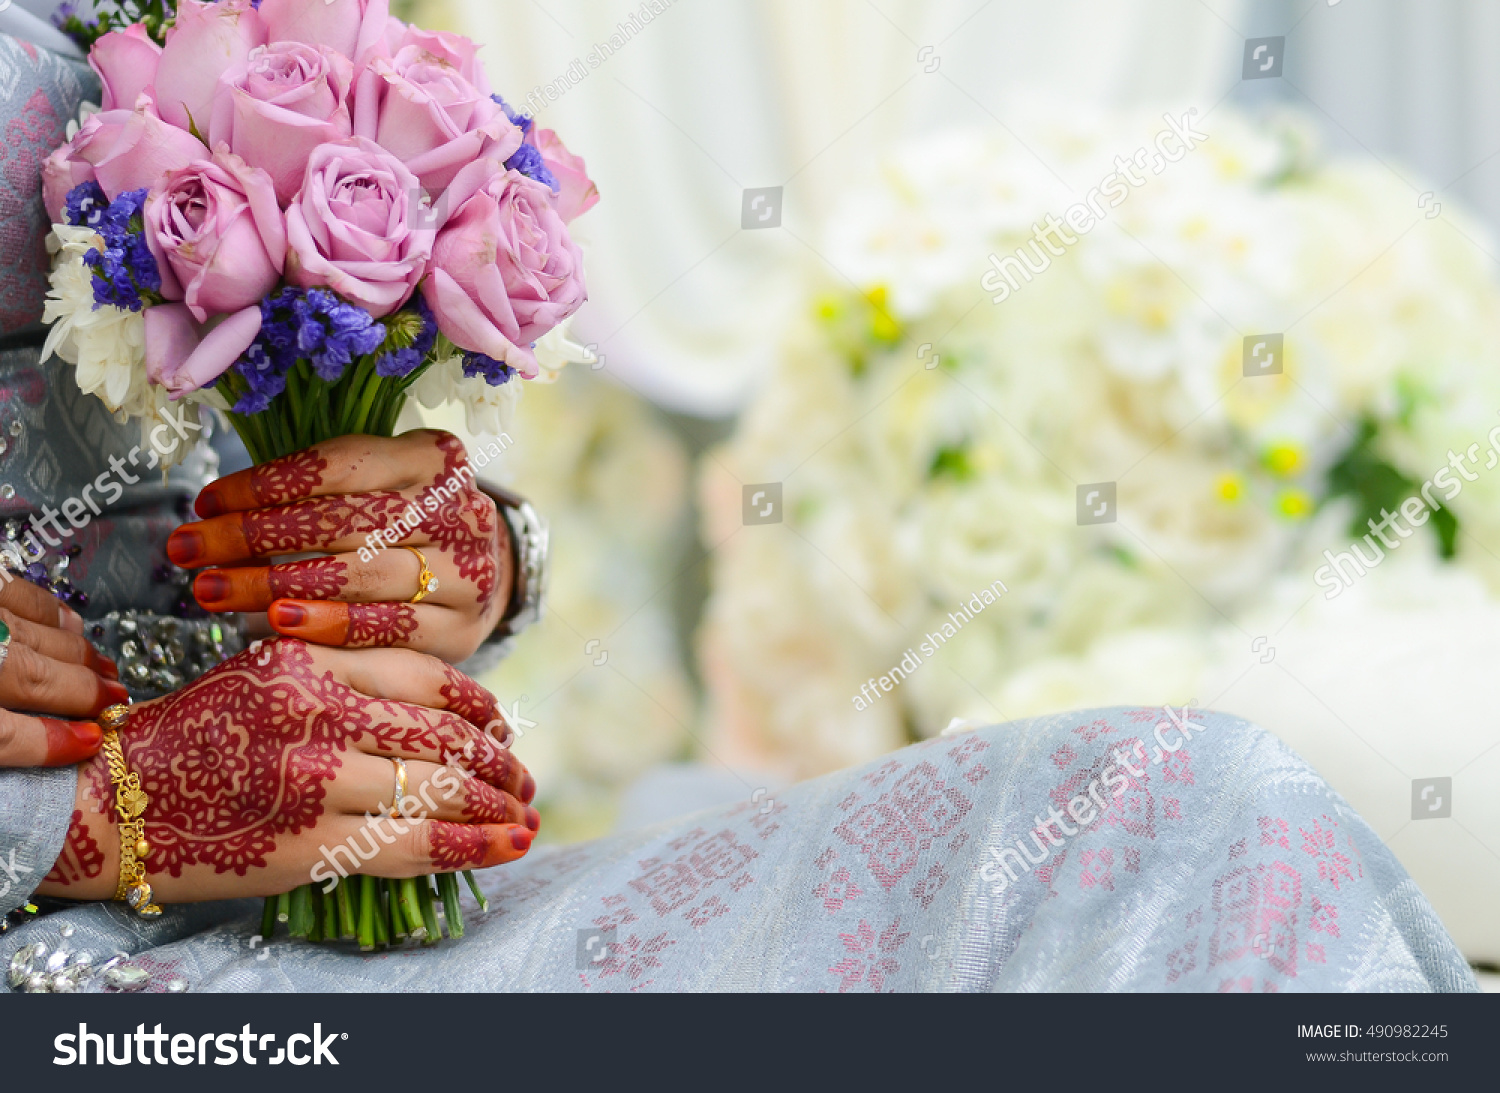 Hands of Bride With Flower bouquet Malay Wedding Dress And Bouquet Of Flowers Selective Focus And Shallow DOF